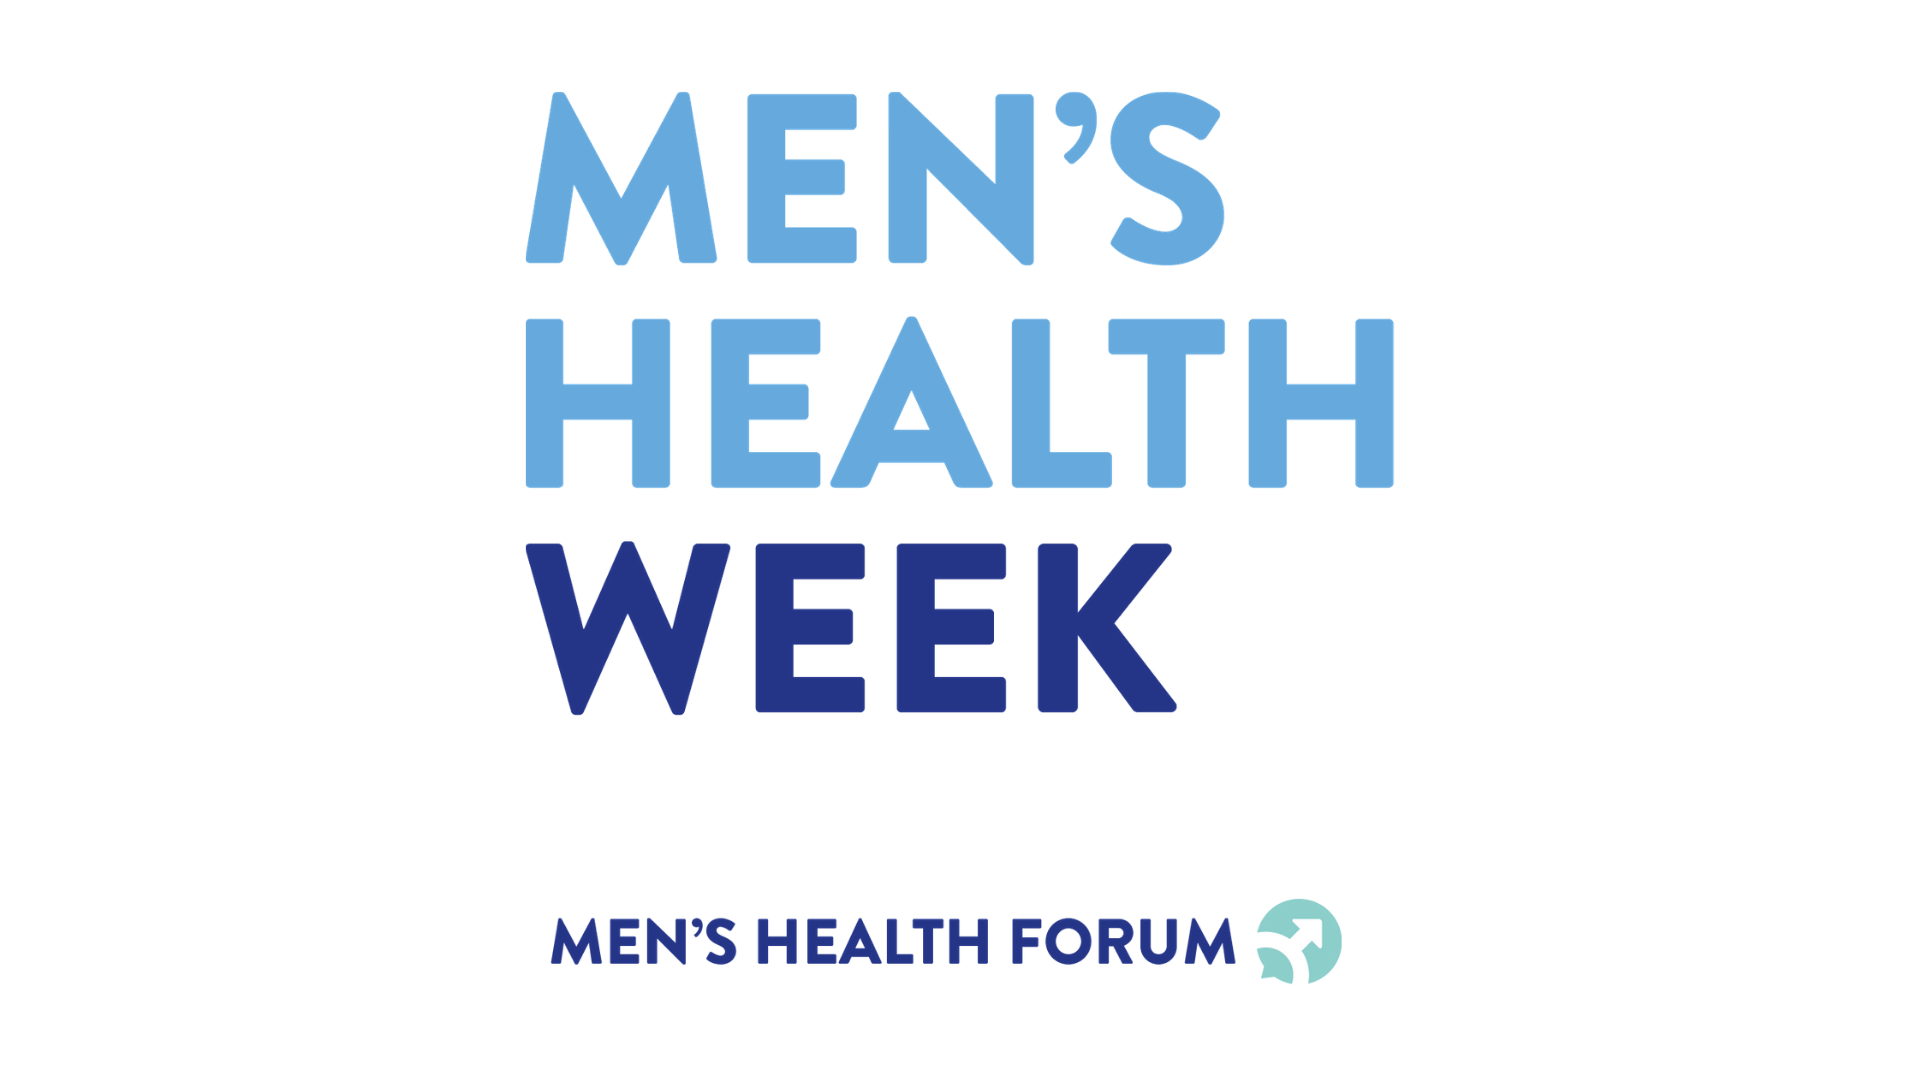 Men's Health Week logo